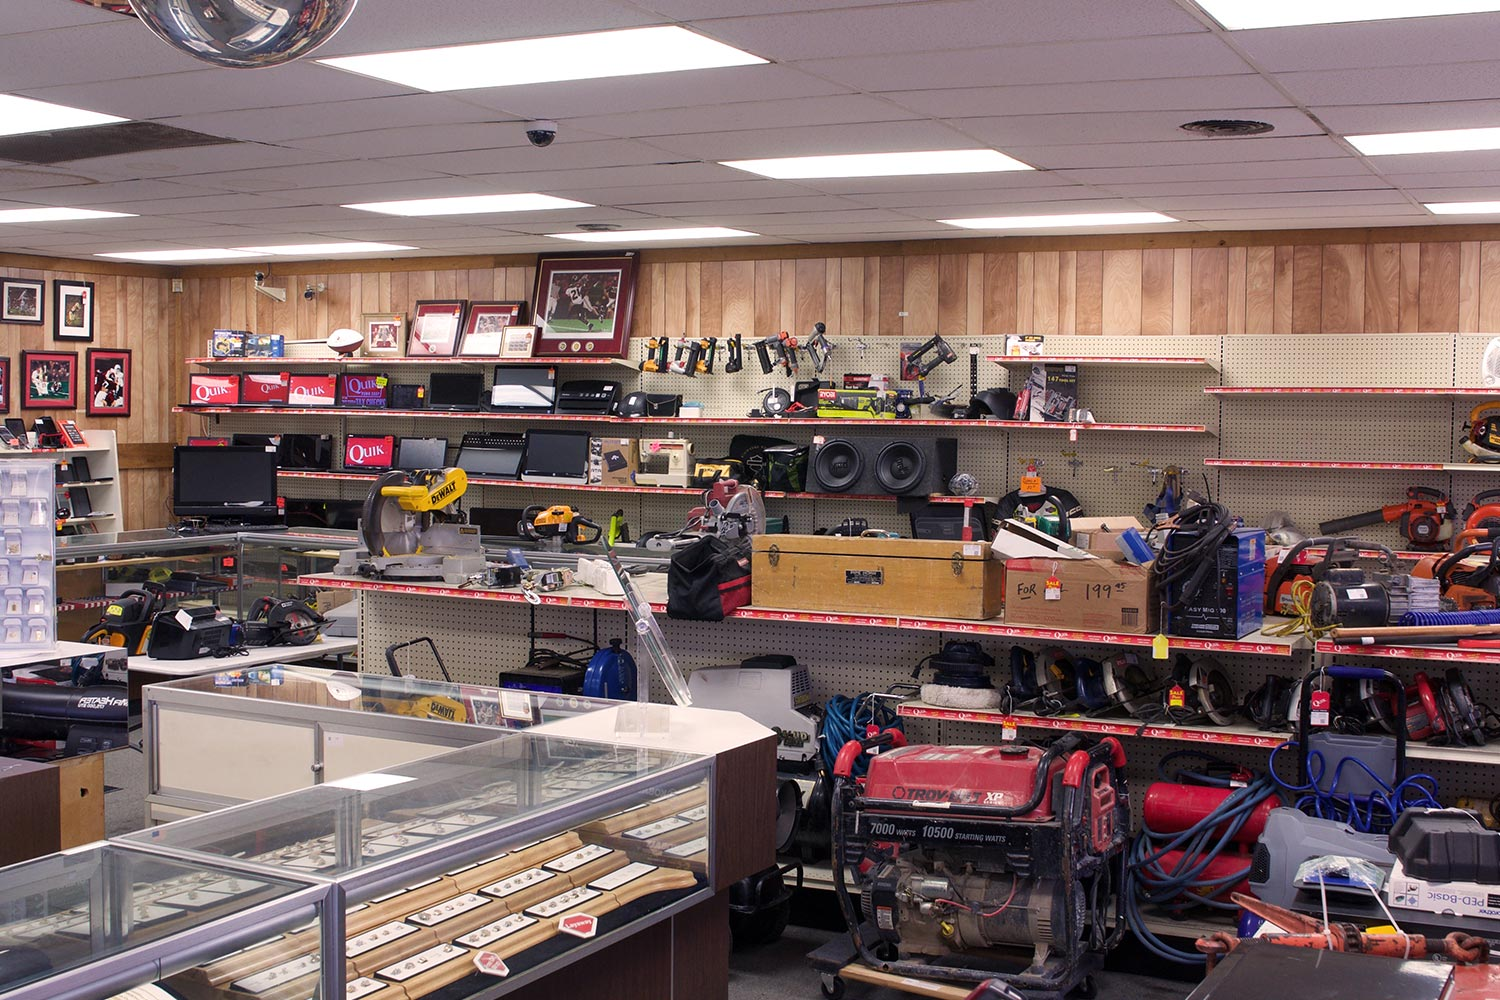 Quik pawn shop in midfield mobile alabama buy sell for Jewelry pawn shops birmingham al